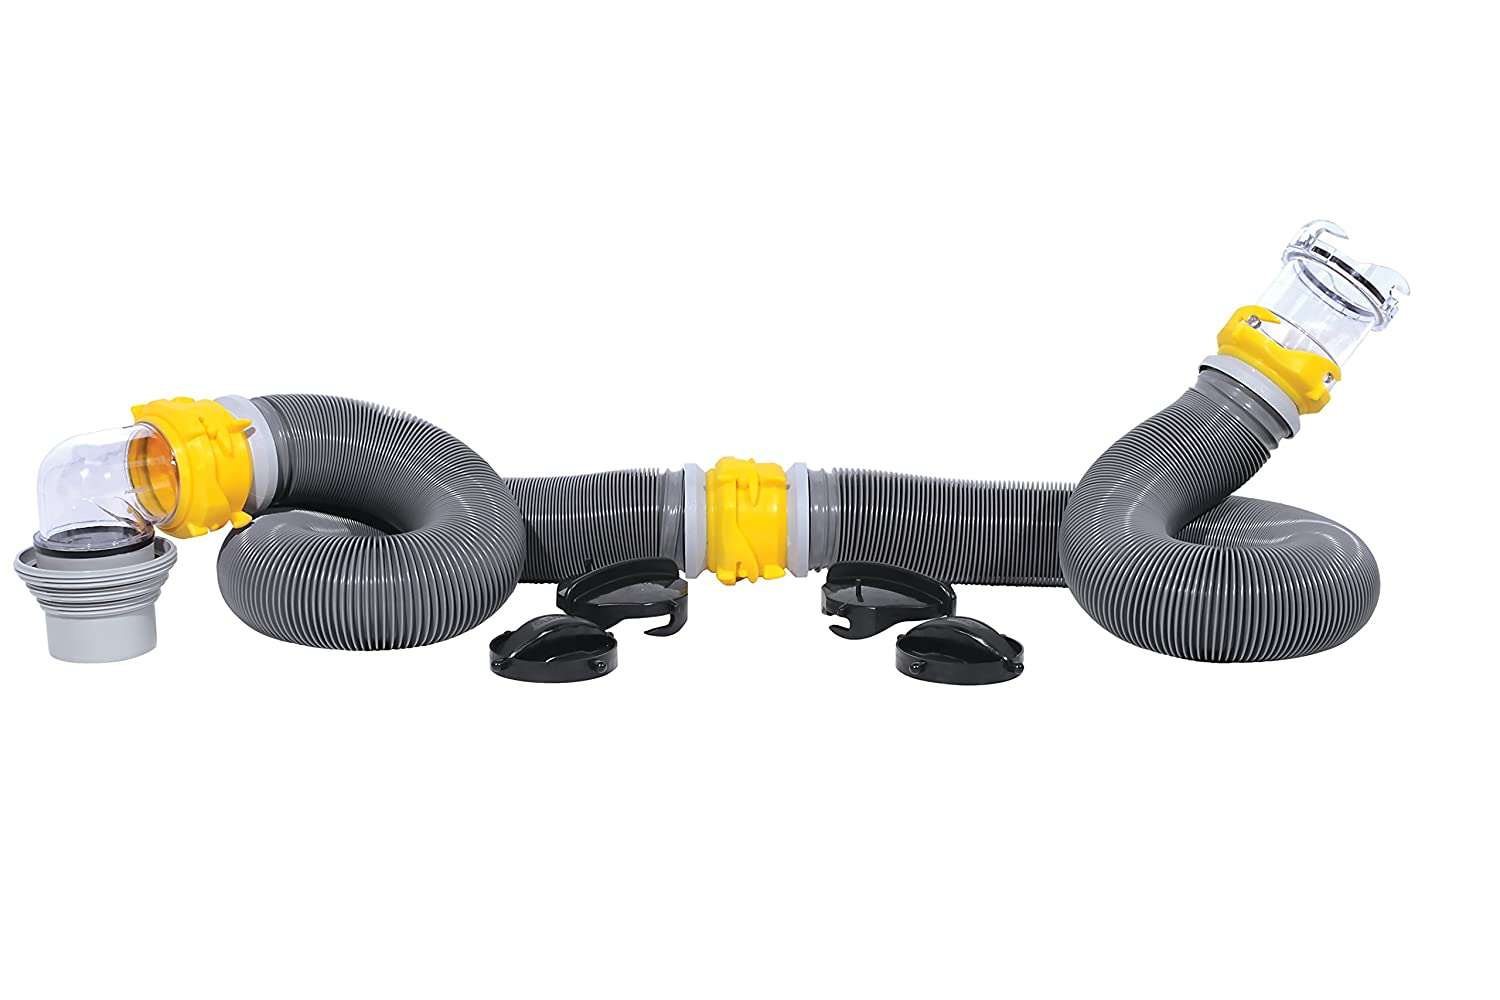 Camco Deluxe 20' Swivel Ready to Use Kit